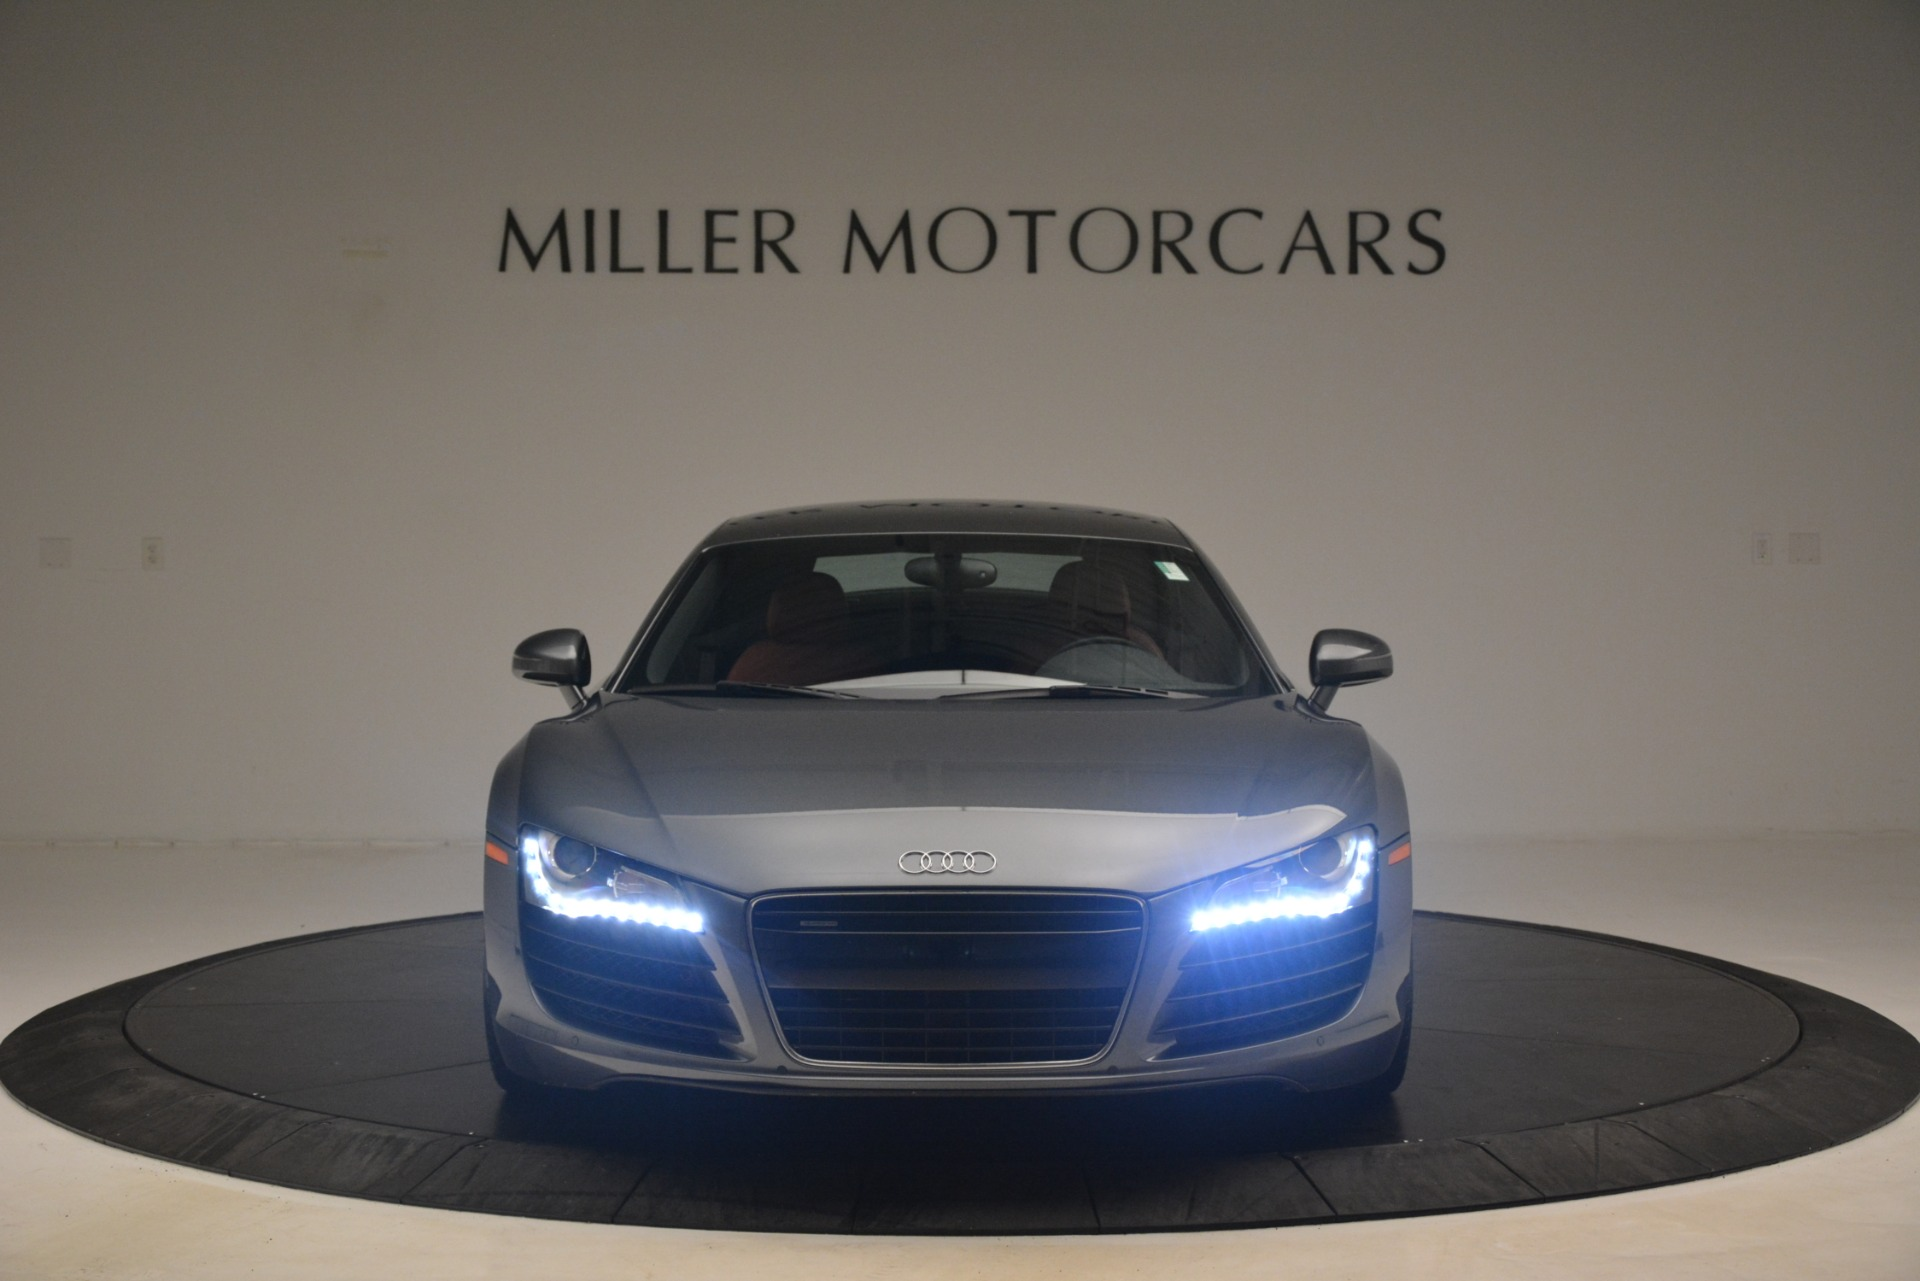 Used 2009 Audi R8 quattro For Sale In Greenwich, CT 3228_p23